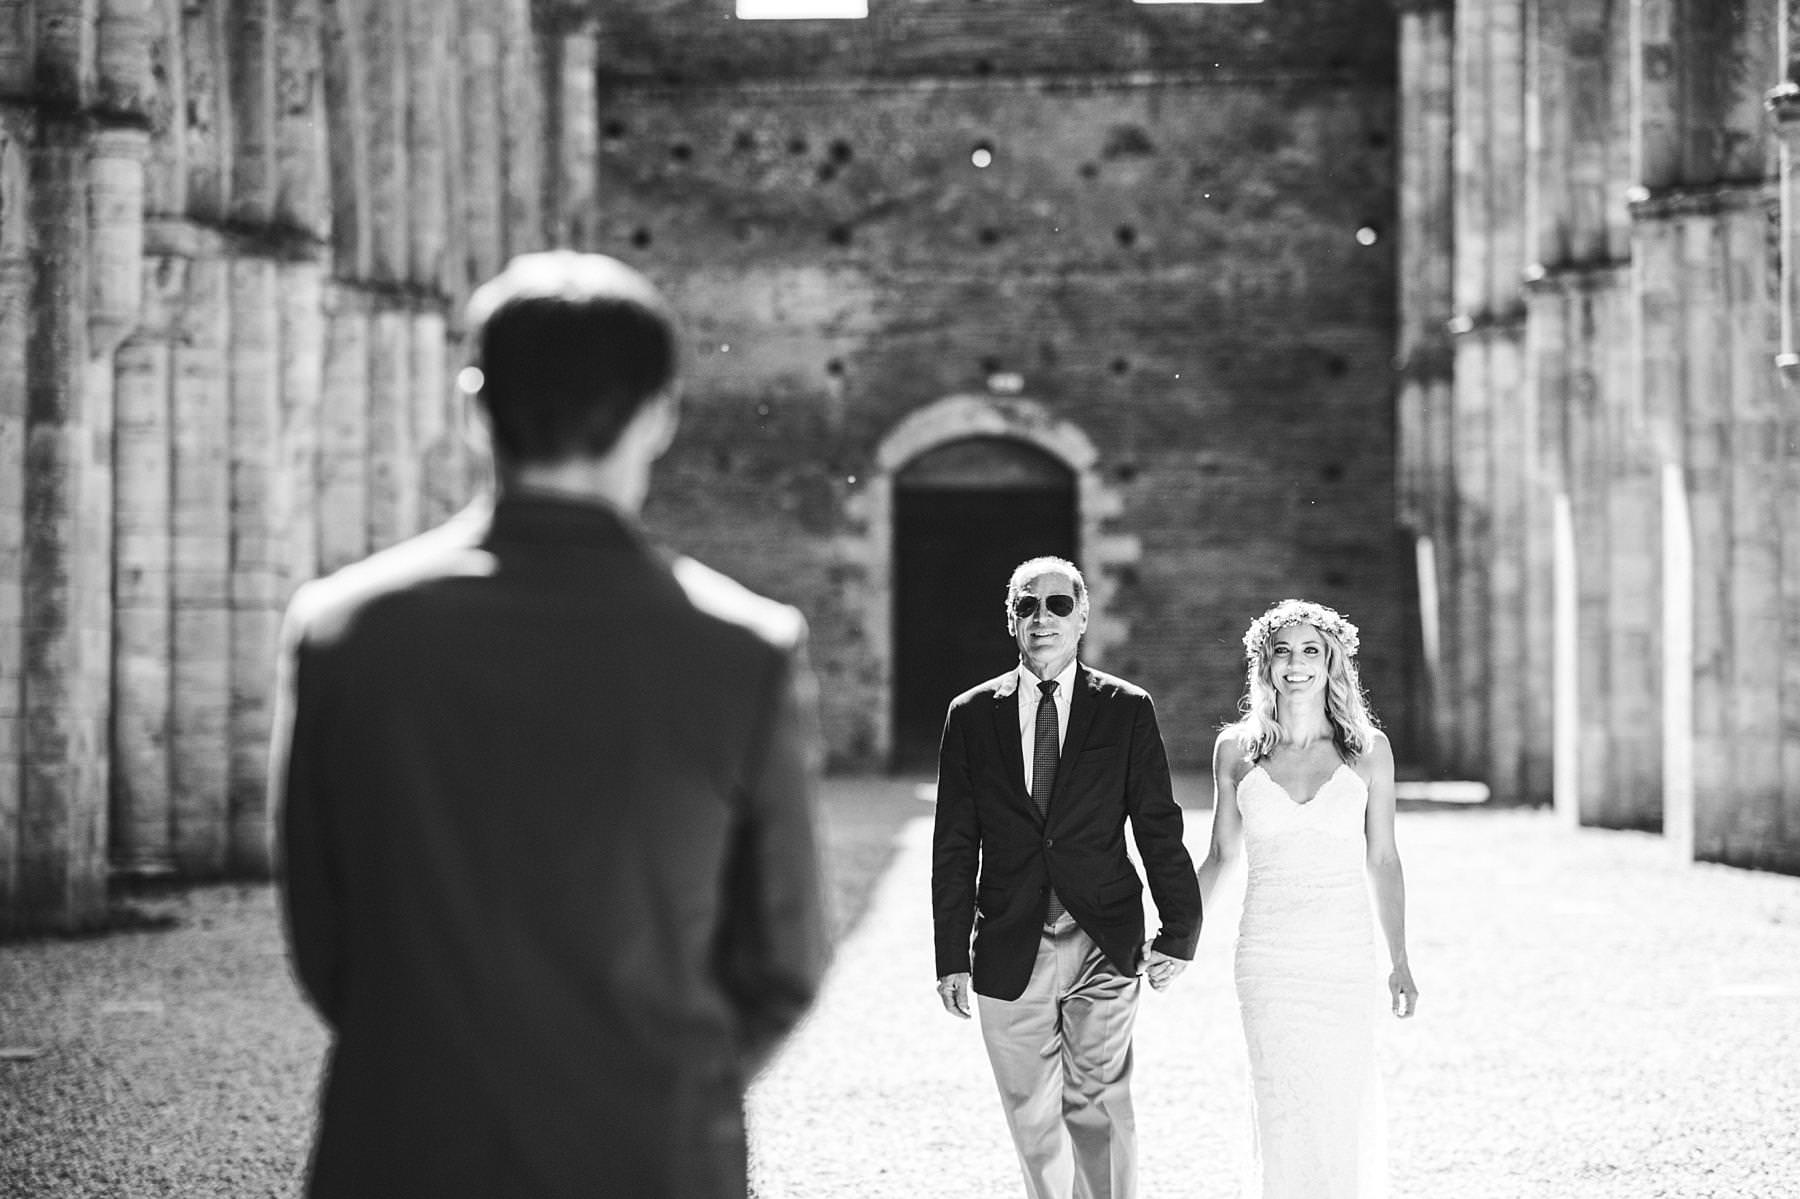 Bride Amelia walks down the aisle of the roofless abbey of San Galgano intimate wedding in Tuscany